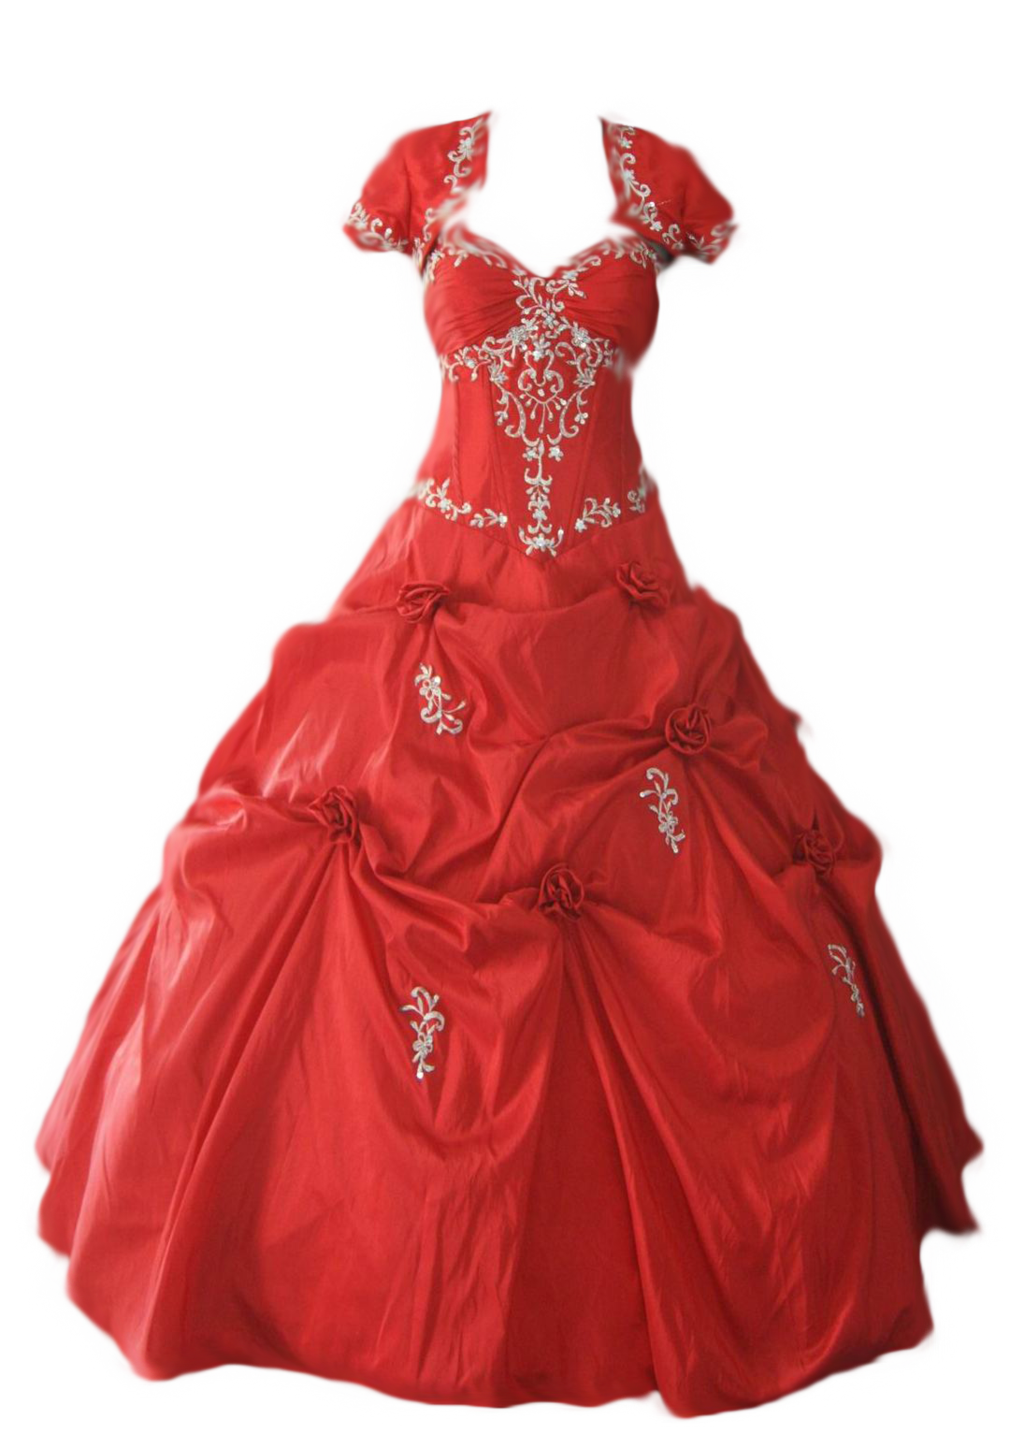 Pink Dress clipart gown #5